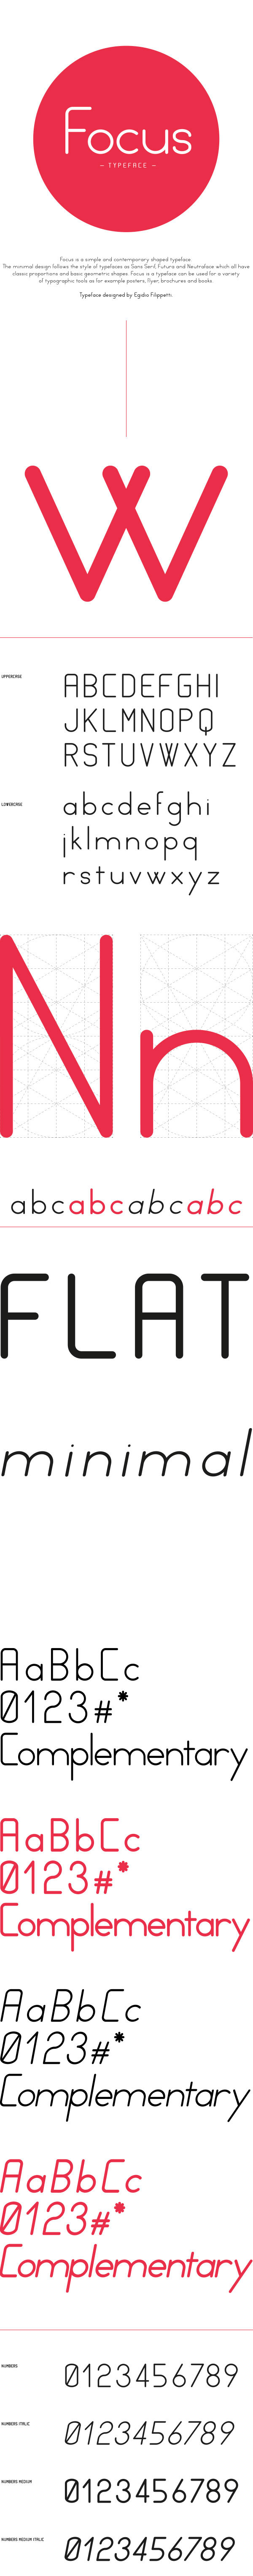 1.Free Font Of The Day  Focus